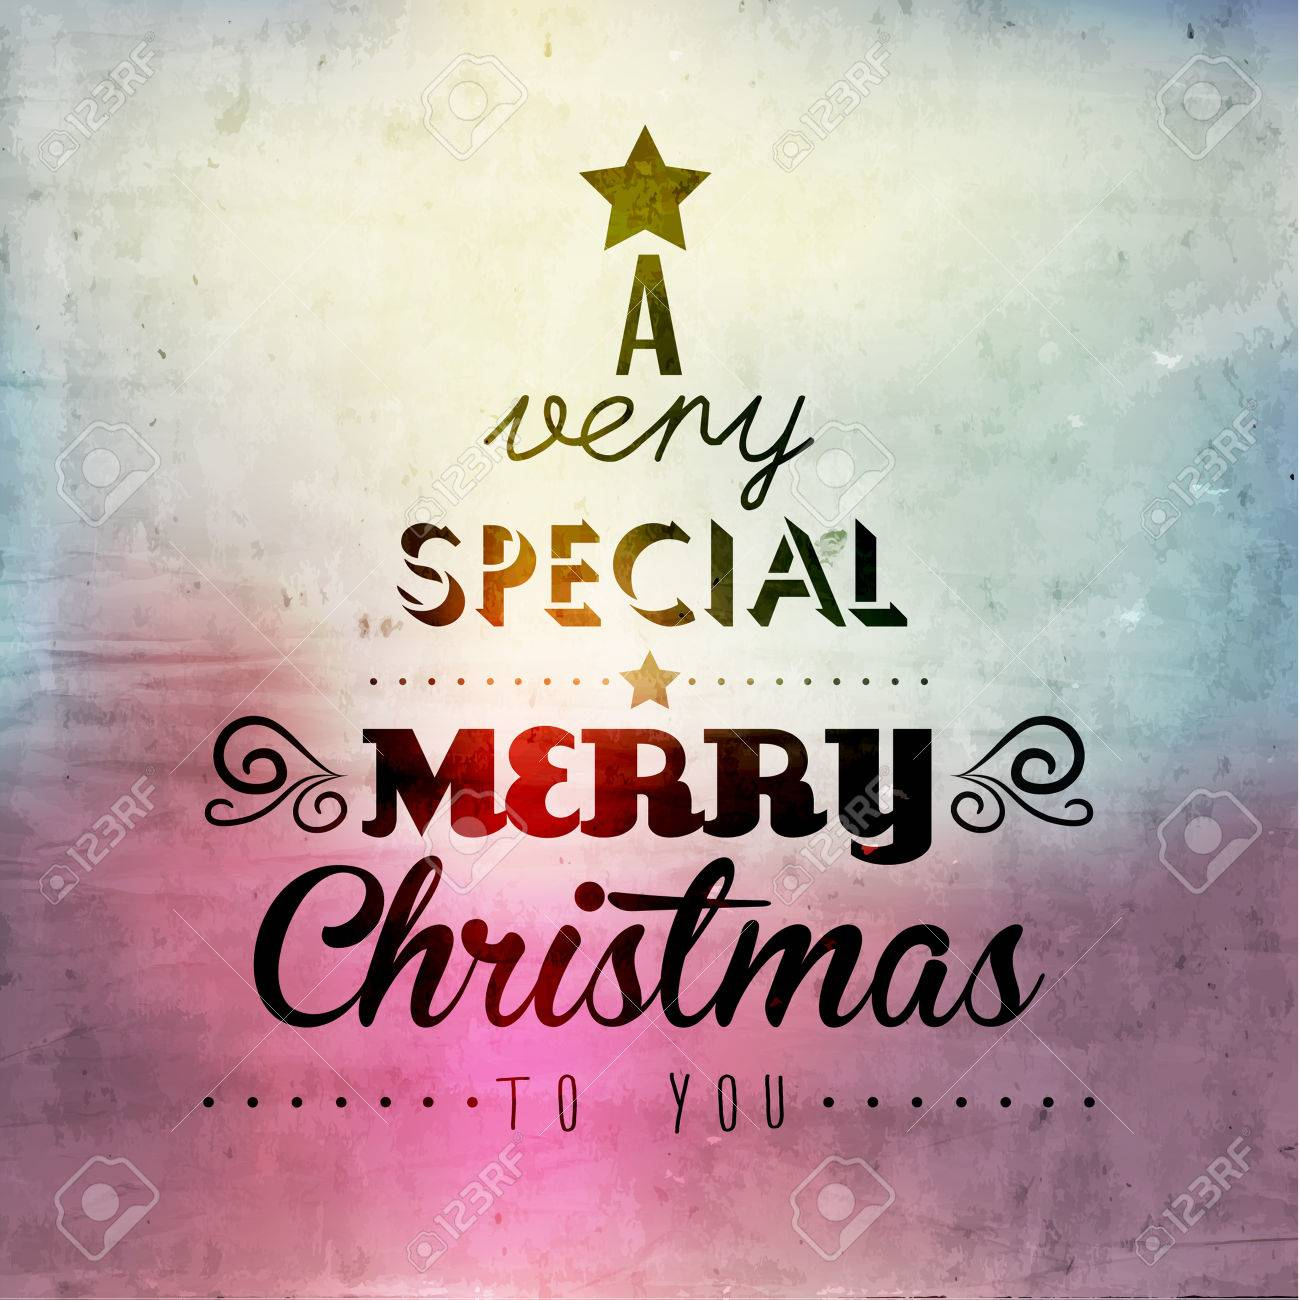 Merry christmas greetings quote vector illustration design royalty merry christmas greetings quote vector illustration design stock vector 33328132 m4hsunfo